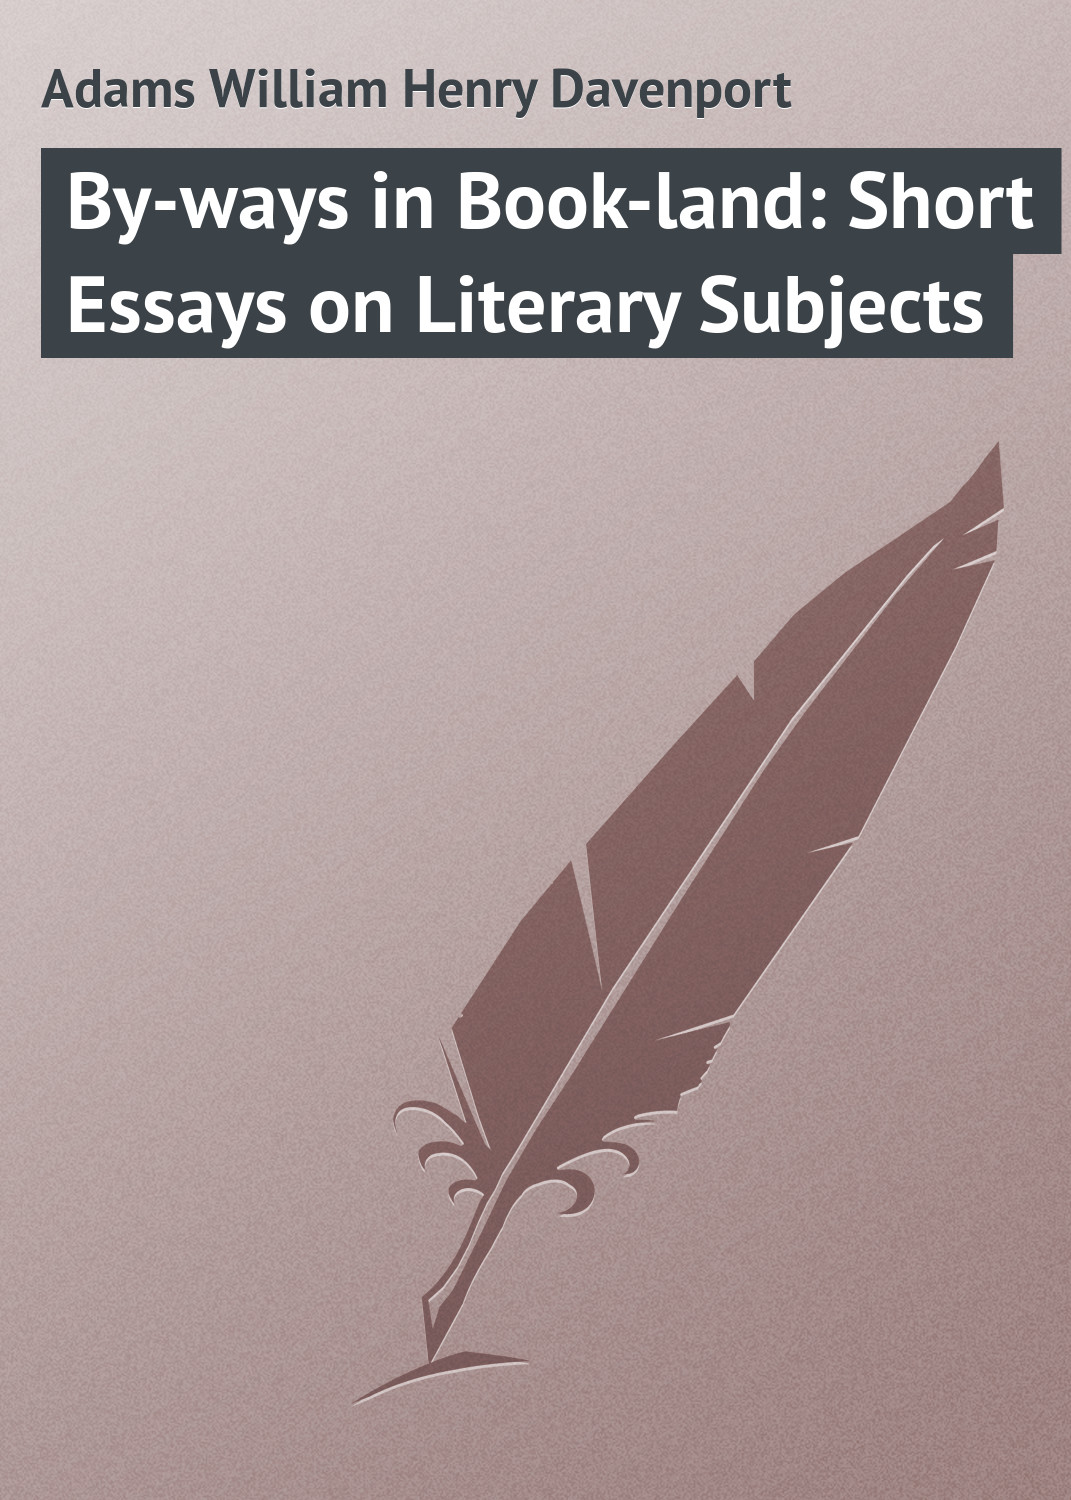 essays on parasitism Adams William Henry Davenport By-ways in Book-land: Short Essays on Literary Subjects